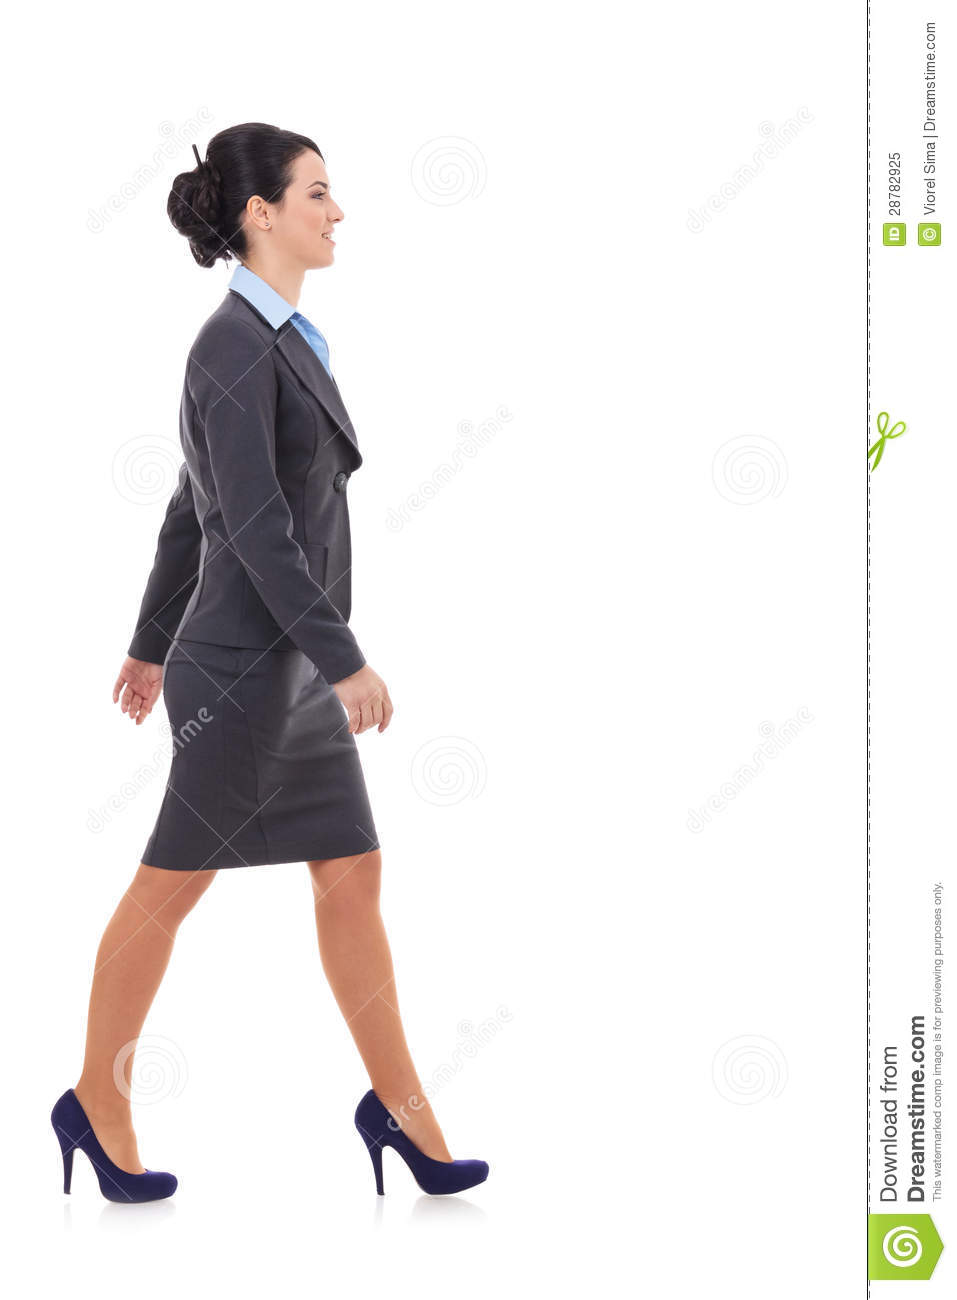 side-view-business-woman-walking-2878292